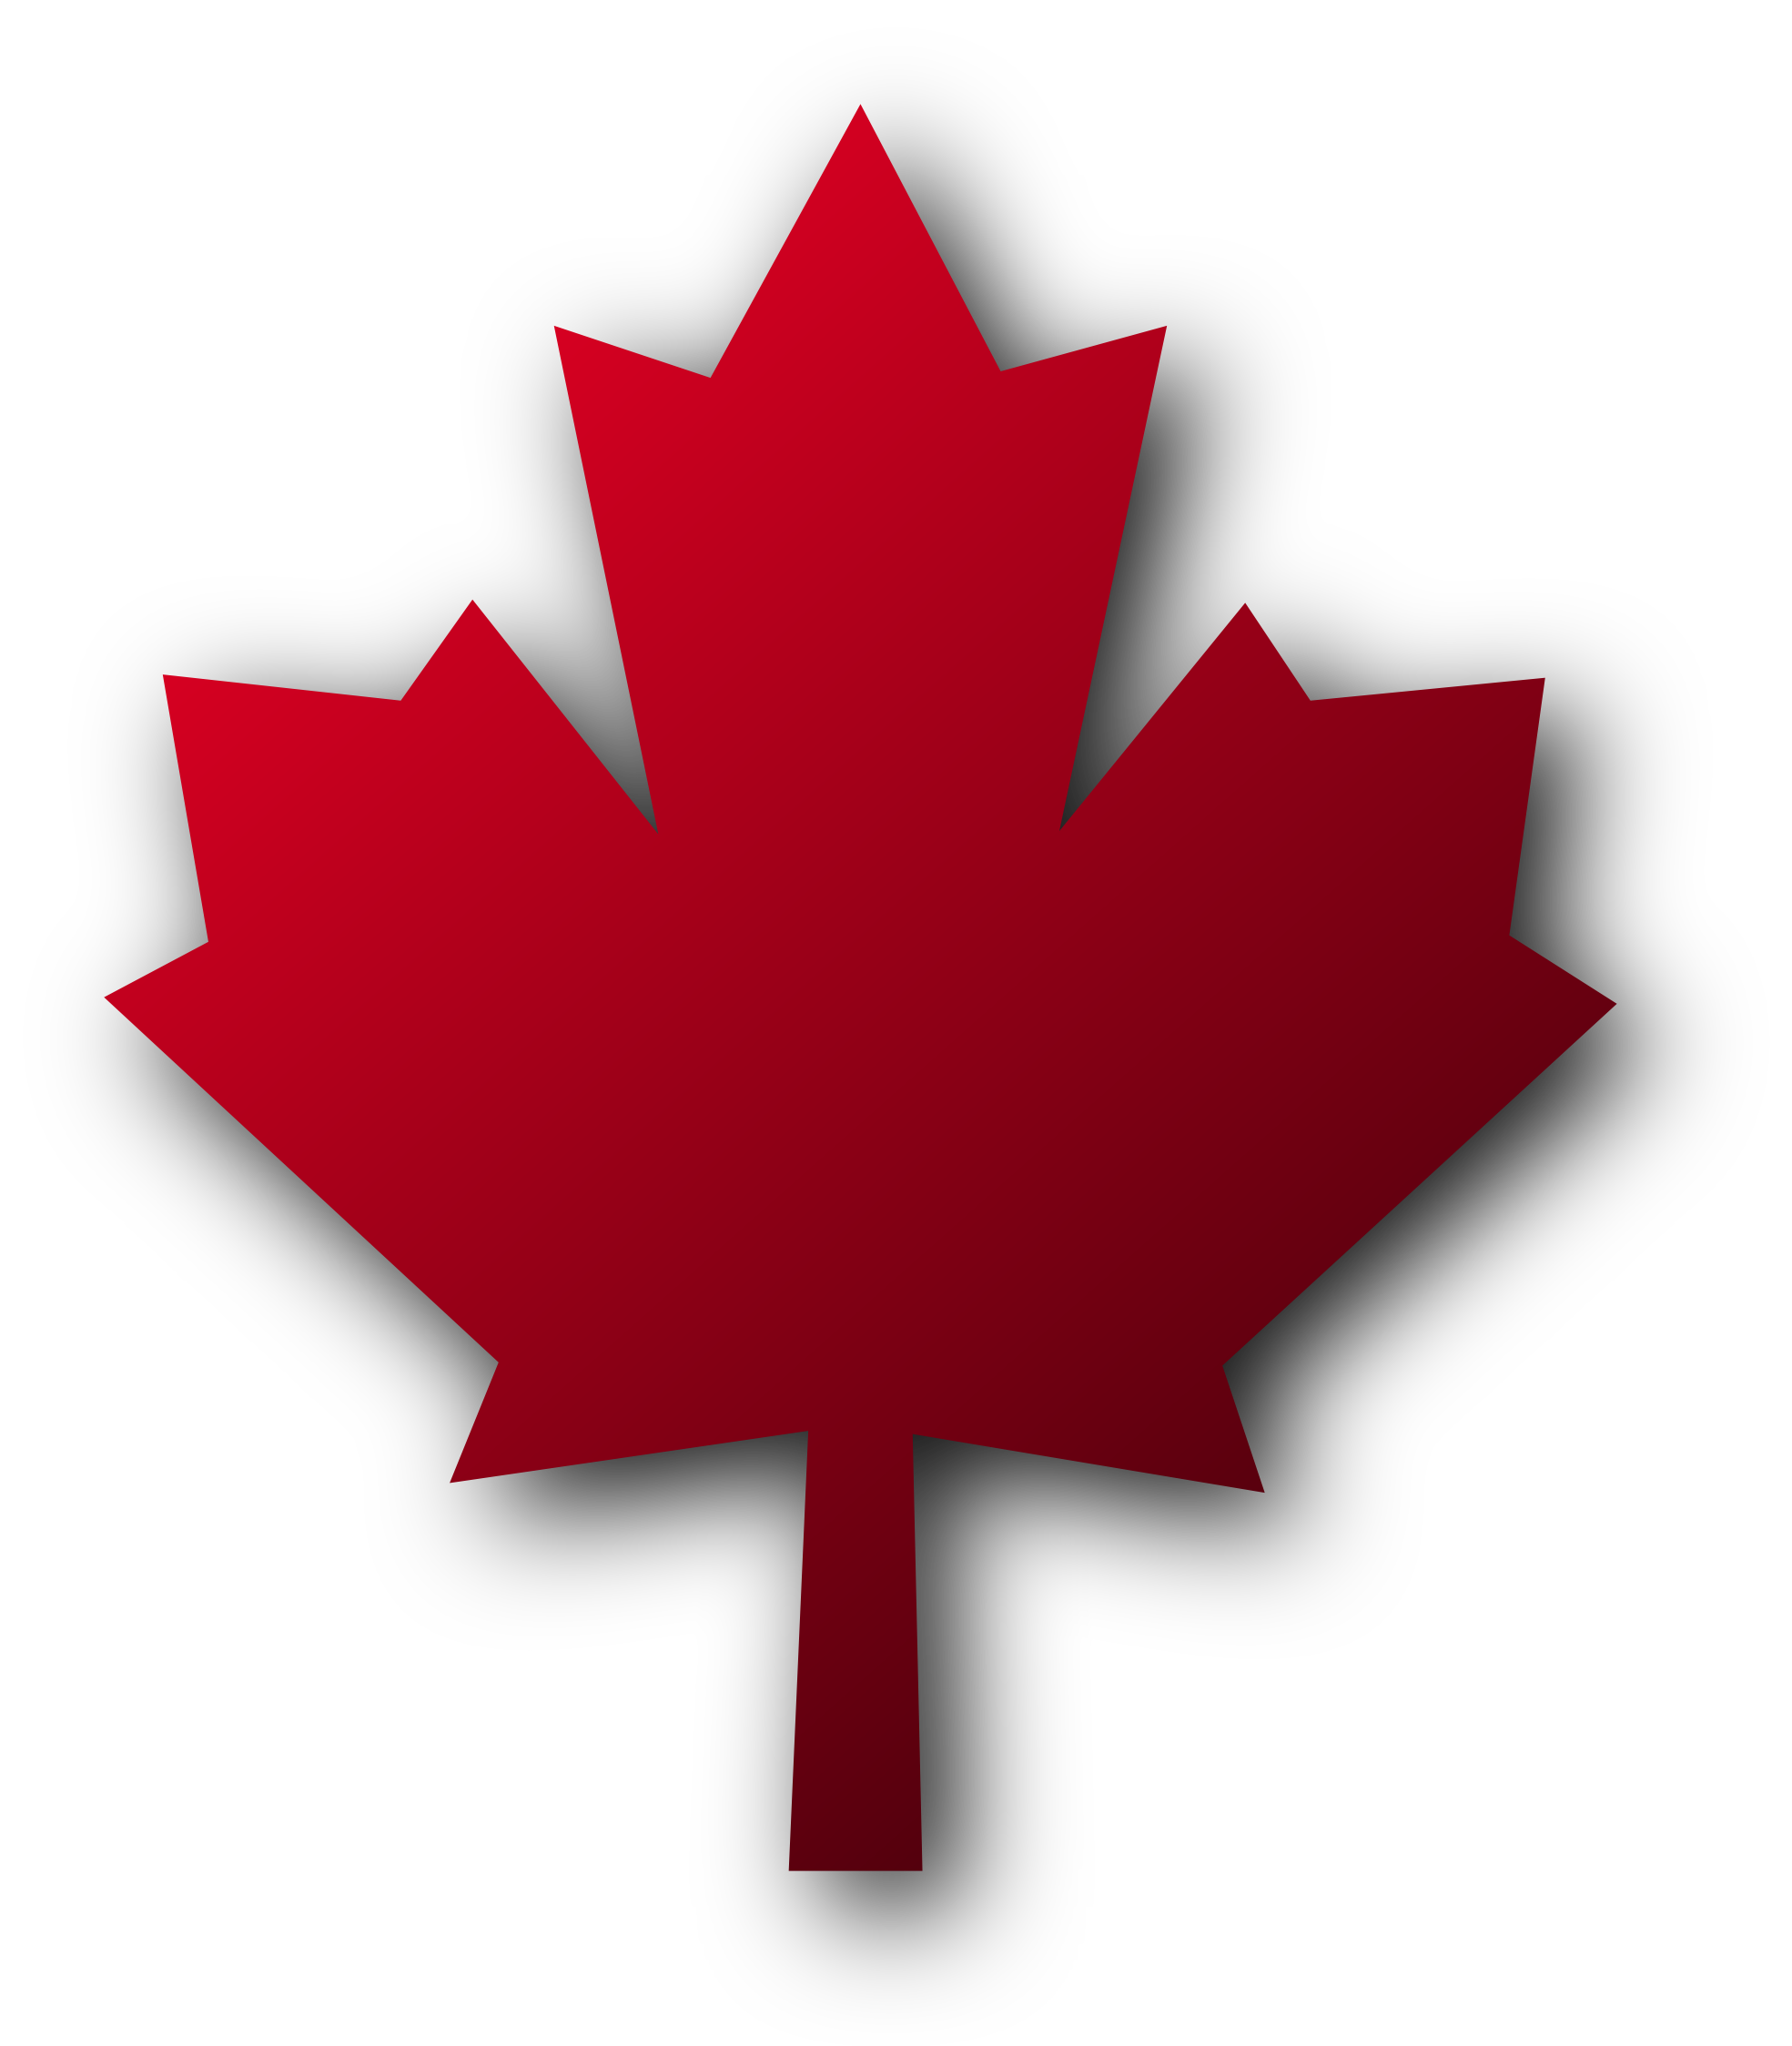 1969x2248 Maple Leaf Clipart Black And White Free 3